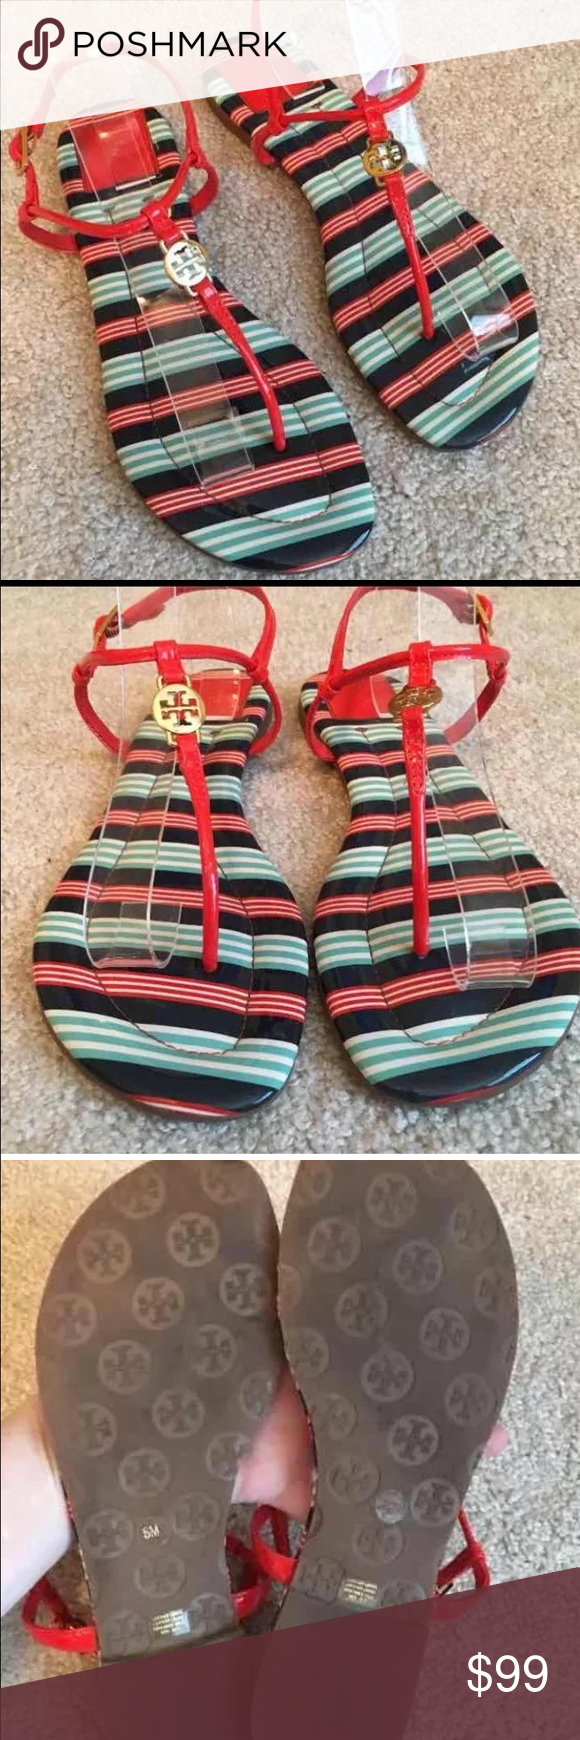 """Tory Burch Habanero Red/Blue/Navy Emmy Sandals 8 Only worn a few times- no flaws. Retail $210 no box no bag. Sole measures 10""""  FIRM PRICE Tory Burch Shoes Sandals"""